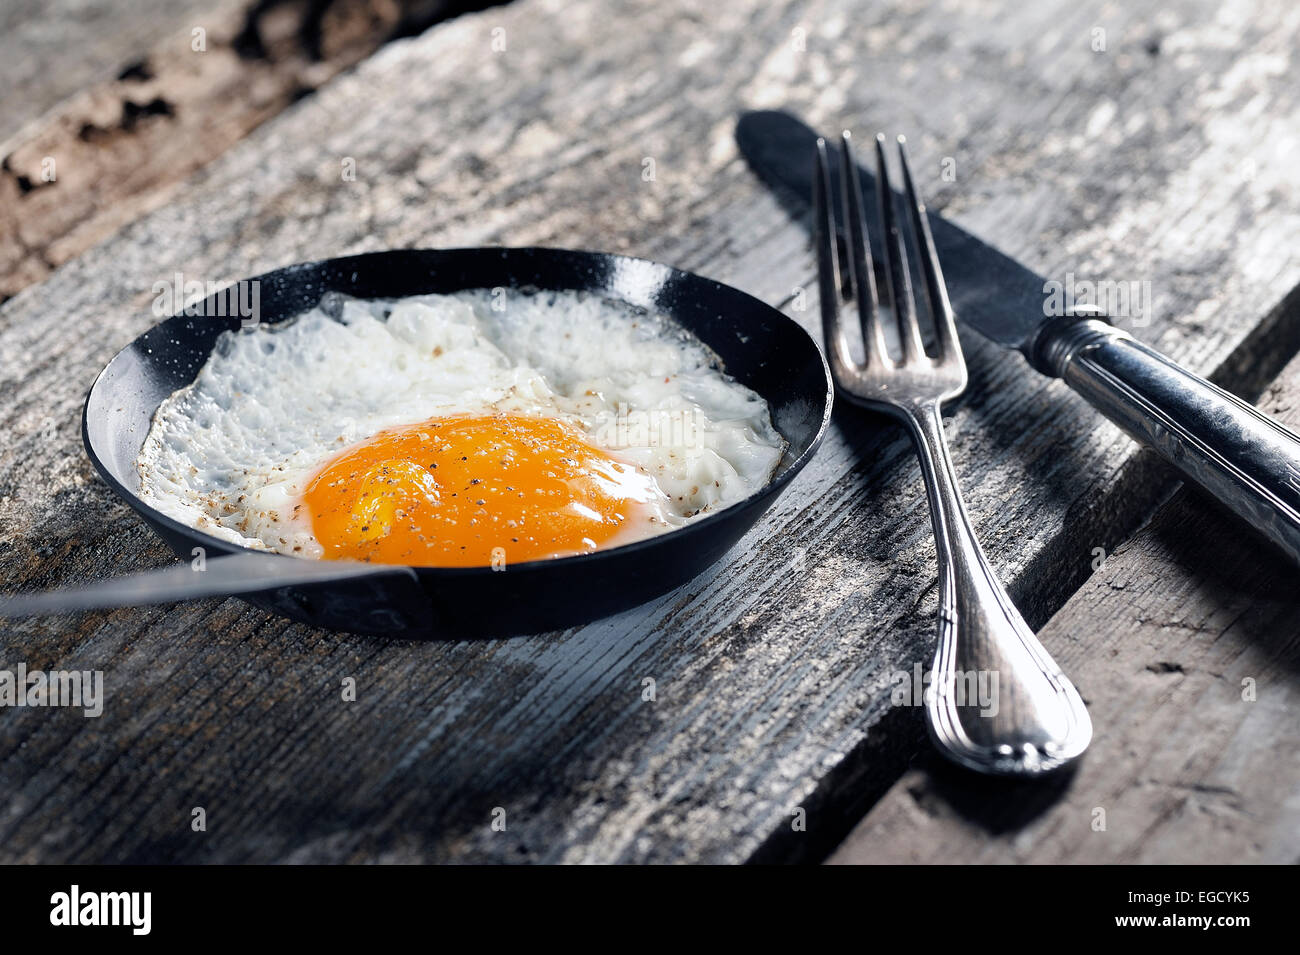 Fried egg, fried in a pan - Stock Image